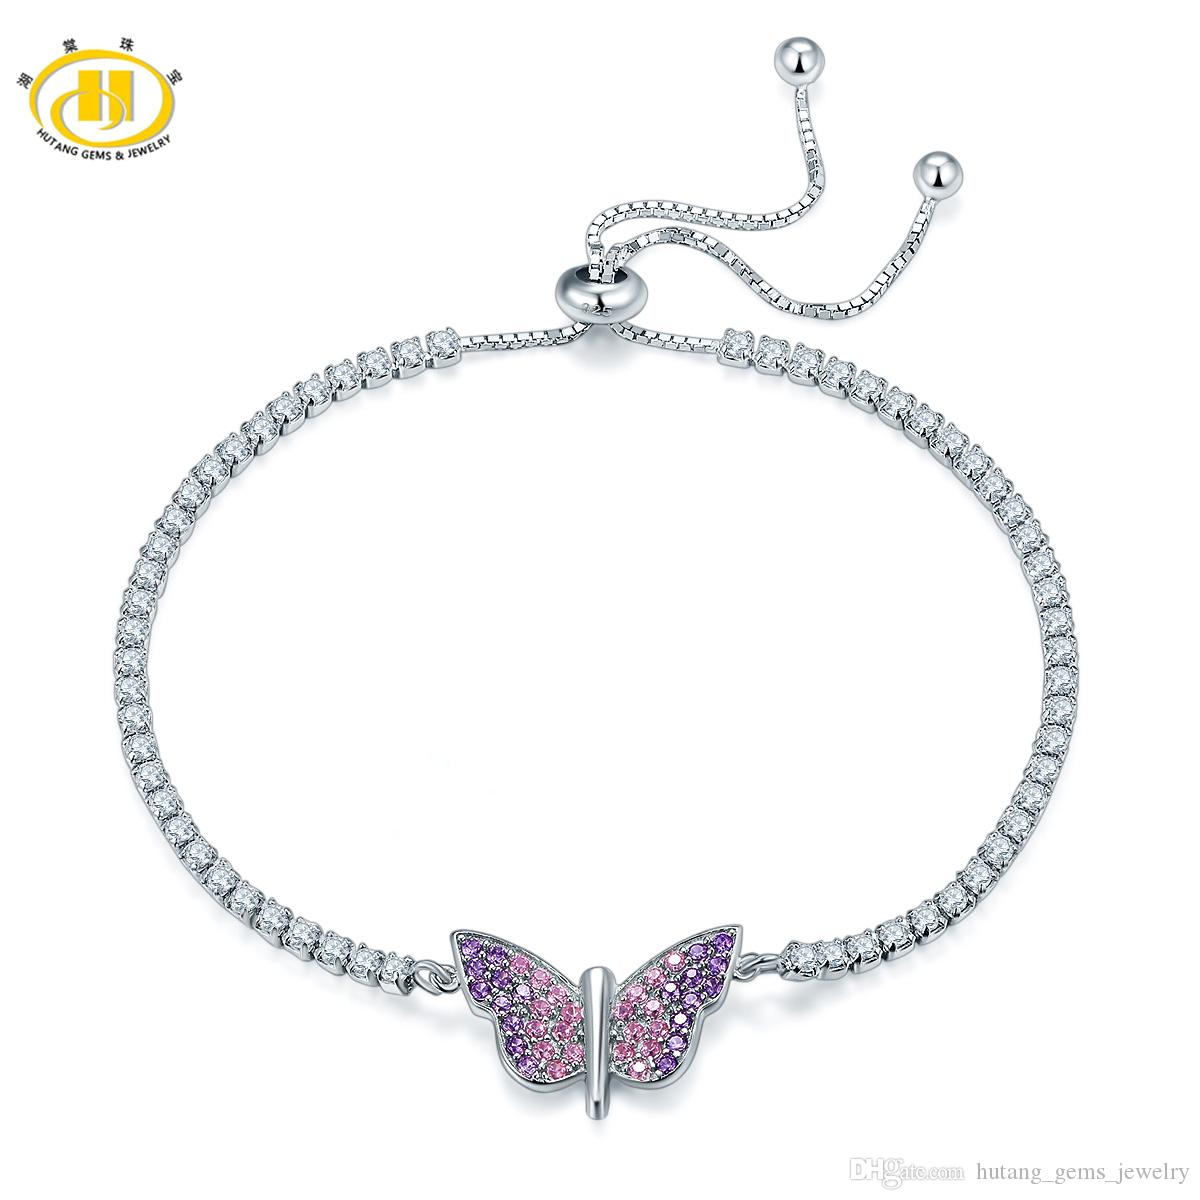 Hutang Solid 925 Sterling Silver Butterfly Adjustable Bracelets for Women's Girl's Crystal Jewelry 2018 New Arrival Hot Sale